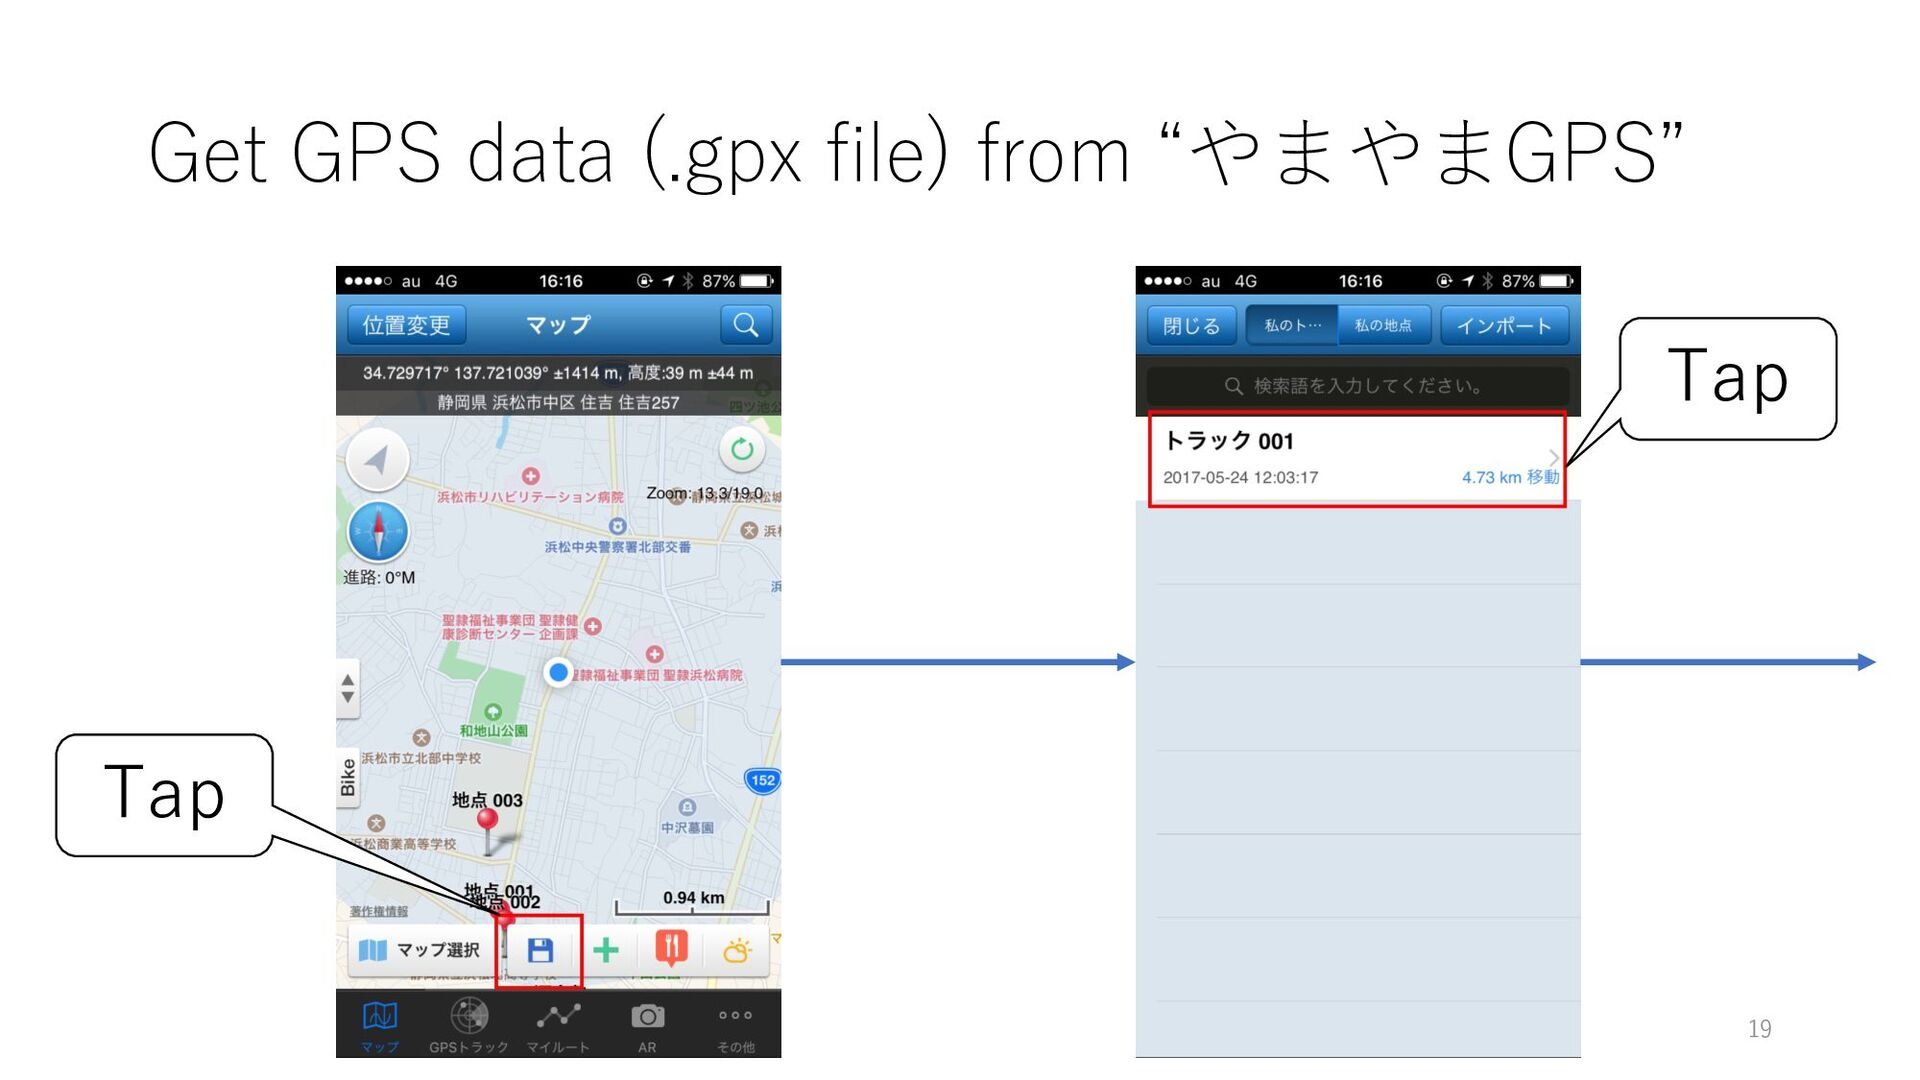 "Get GPS data (.gpx file) from ""やまやまGPS"" Tap Tap..."